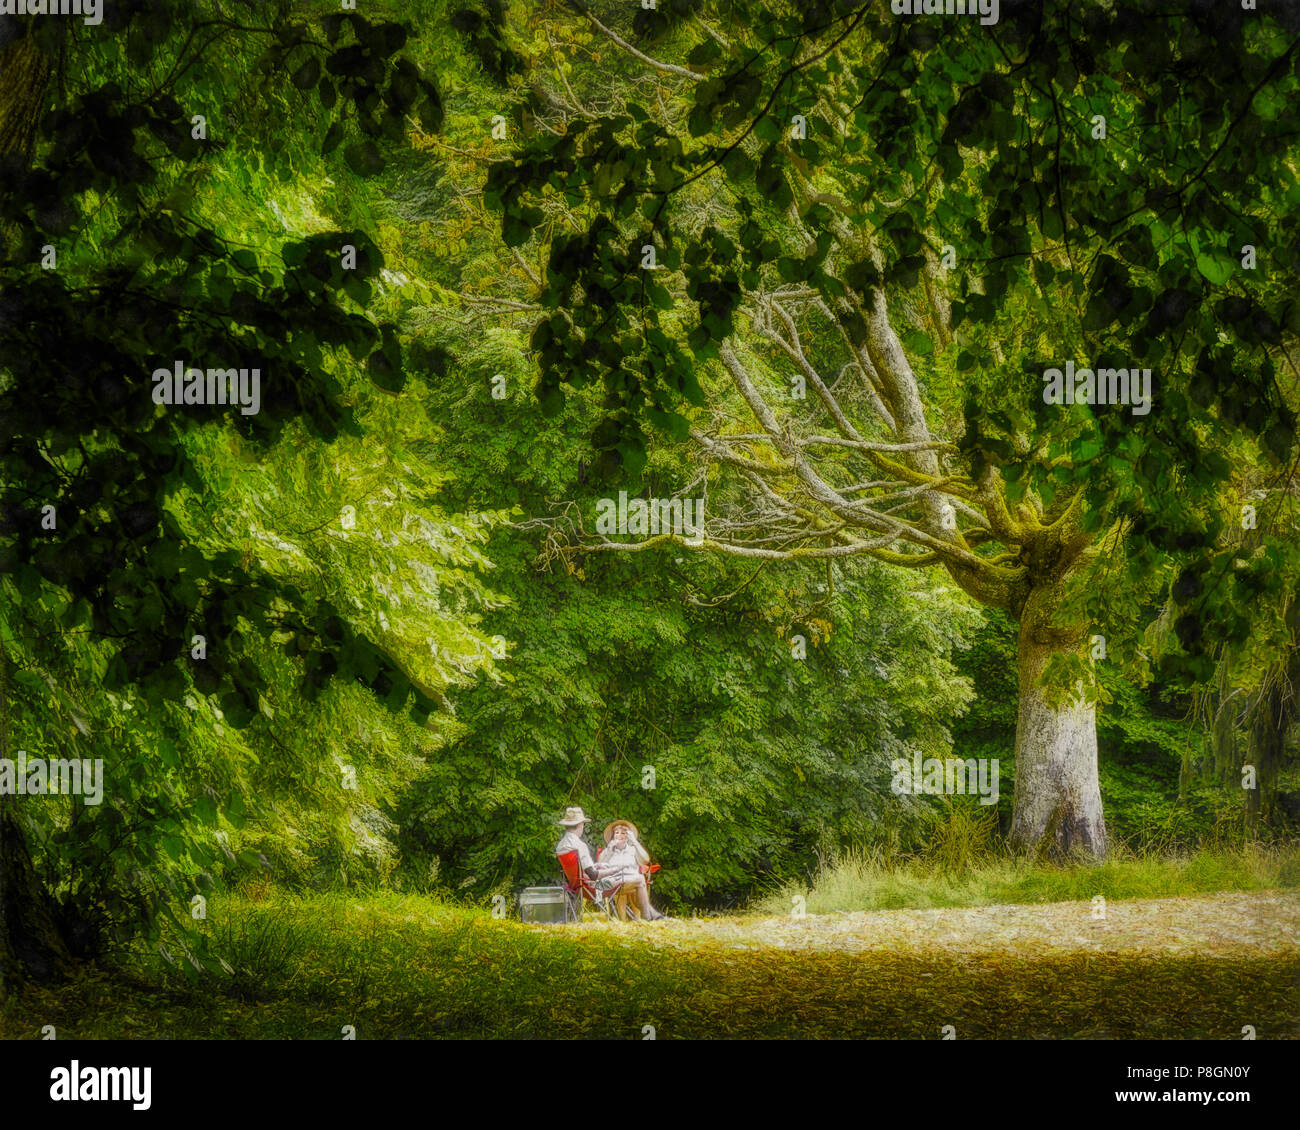 Picnic Park Painting Stock Photos & Picnic Park Painting ...